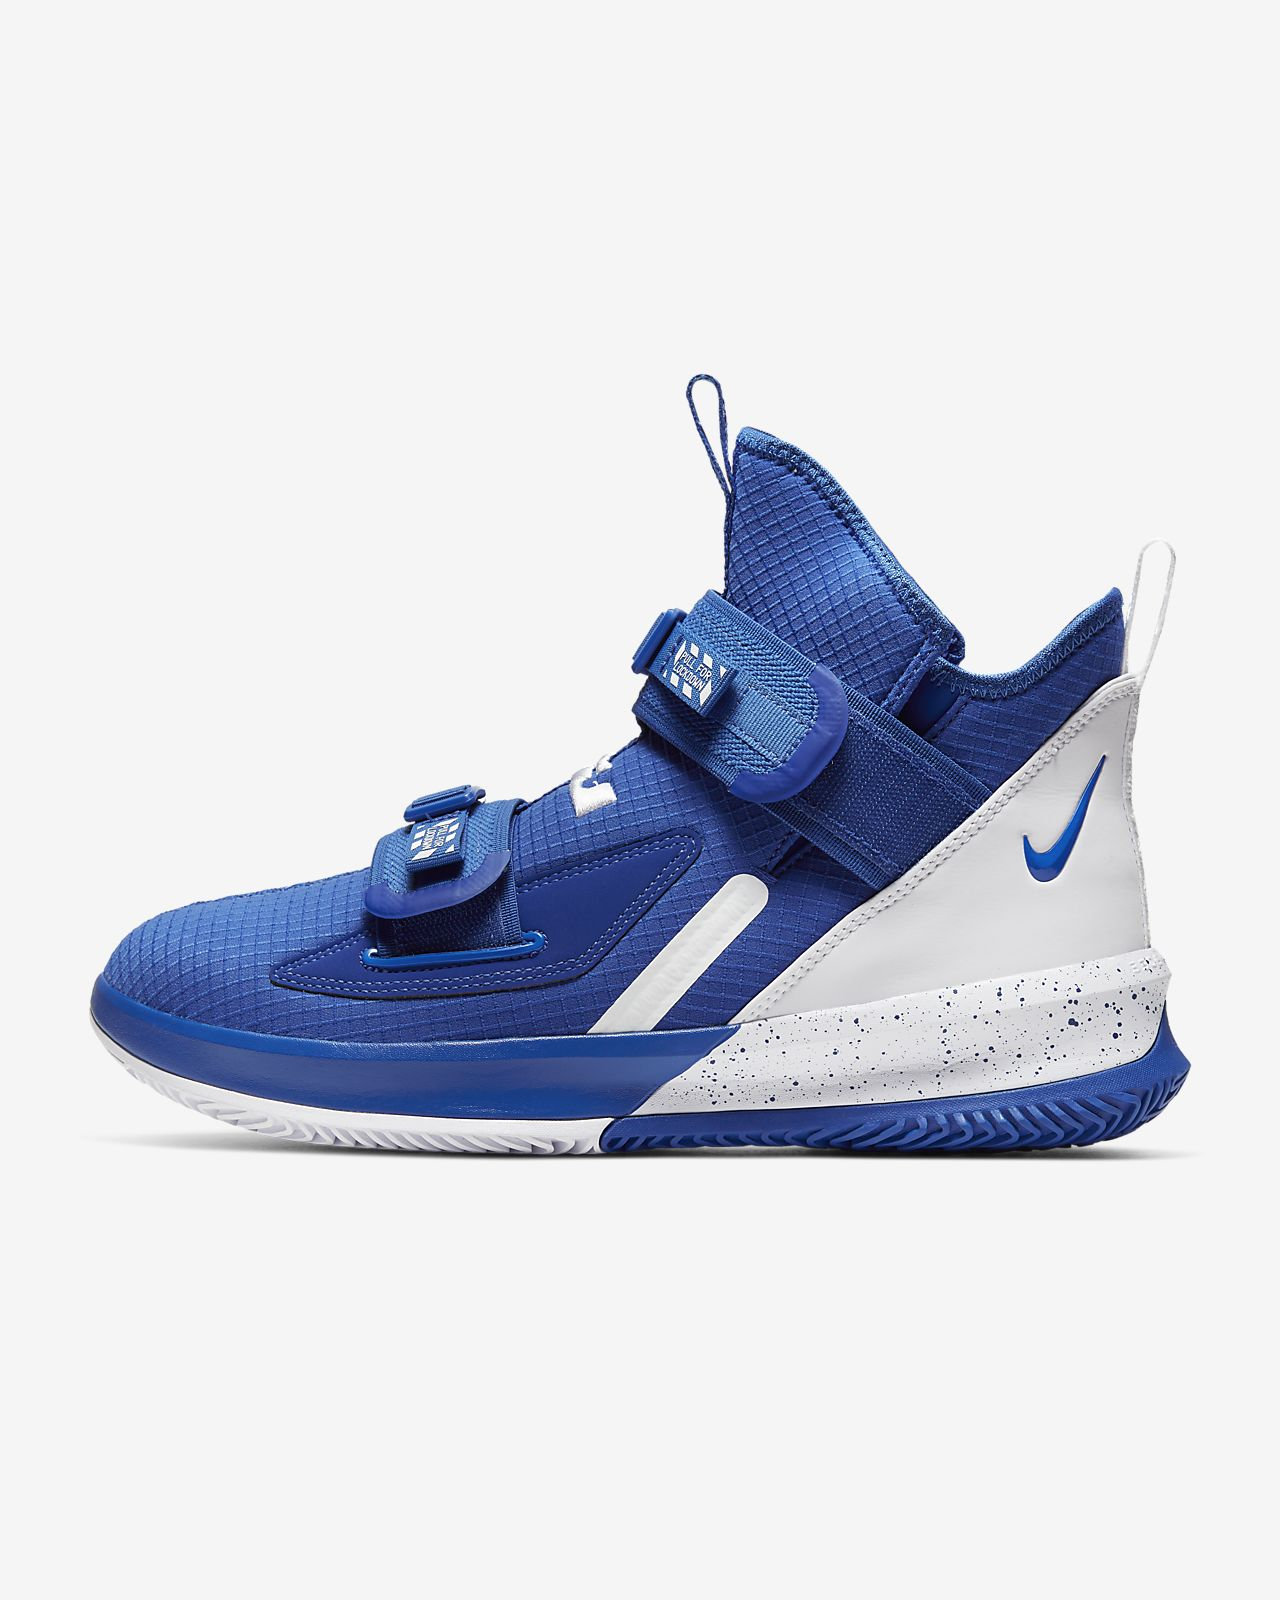 LeBron Soldier 13 SFG (Team) Basketball Shoe